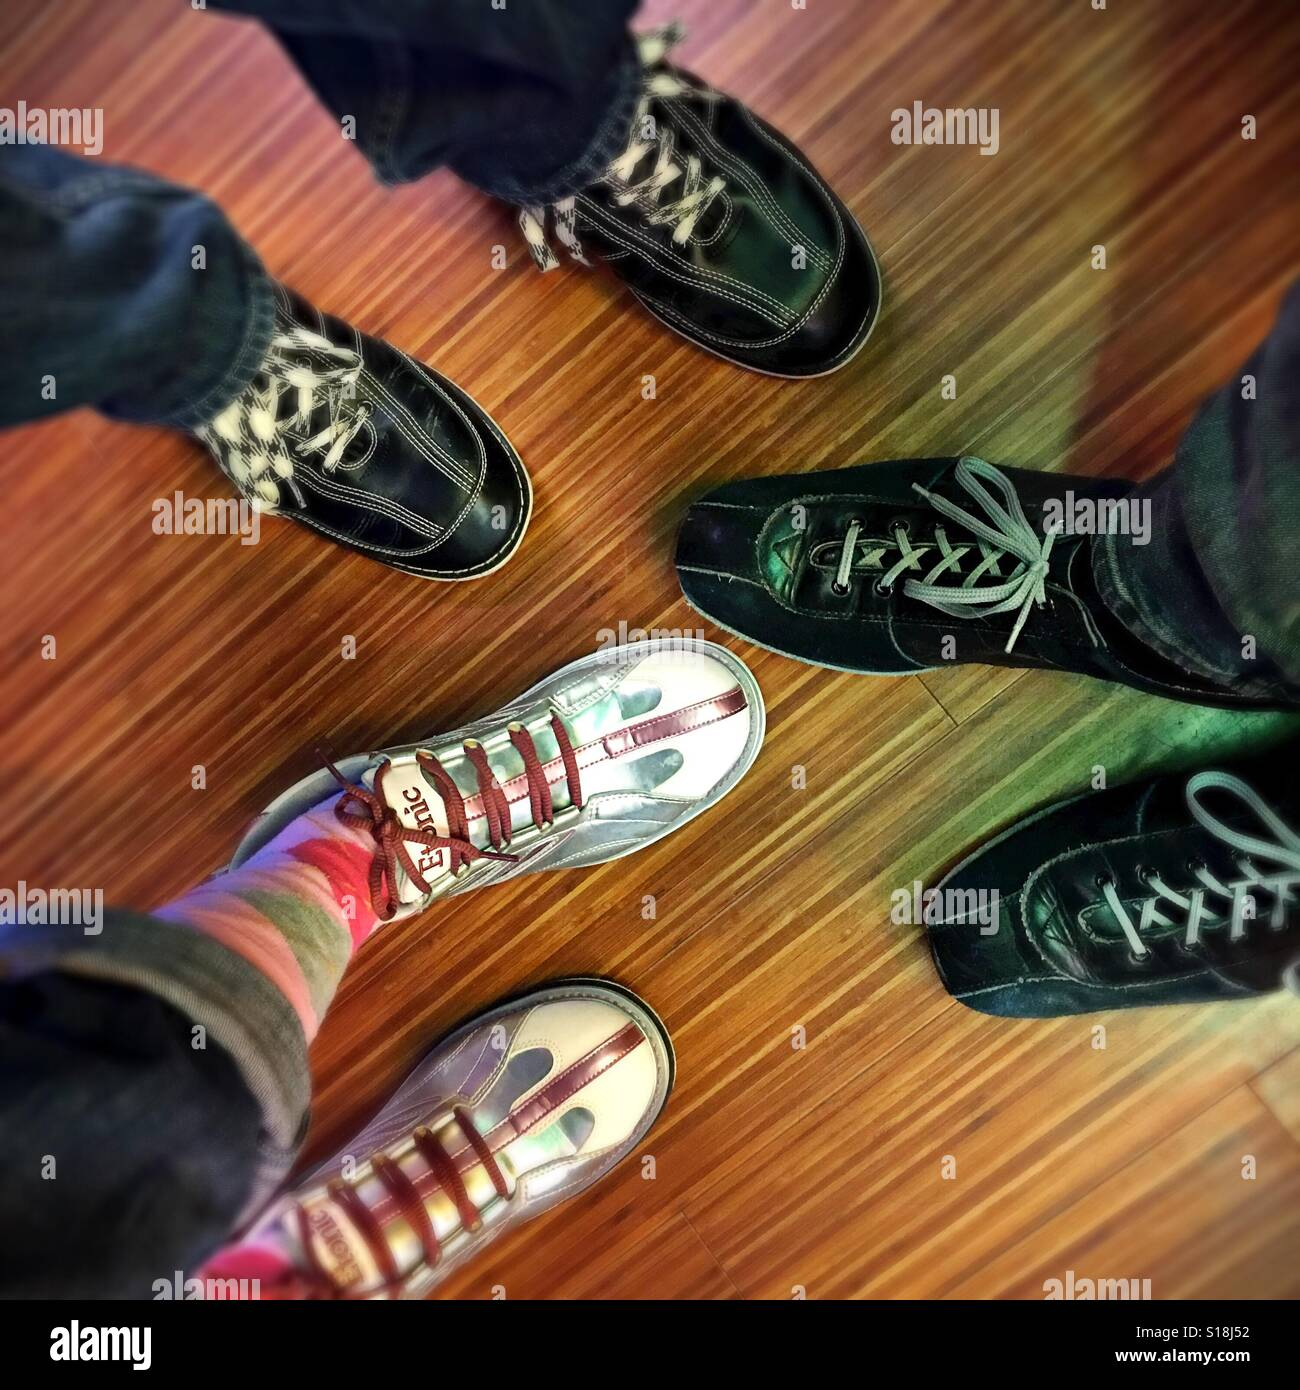 Bird's eye view of three people's feet in bowling shoes. - Stock Image